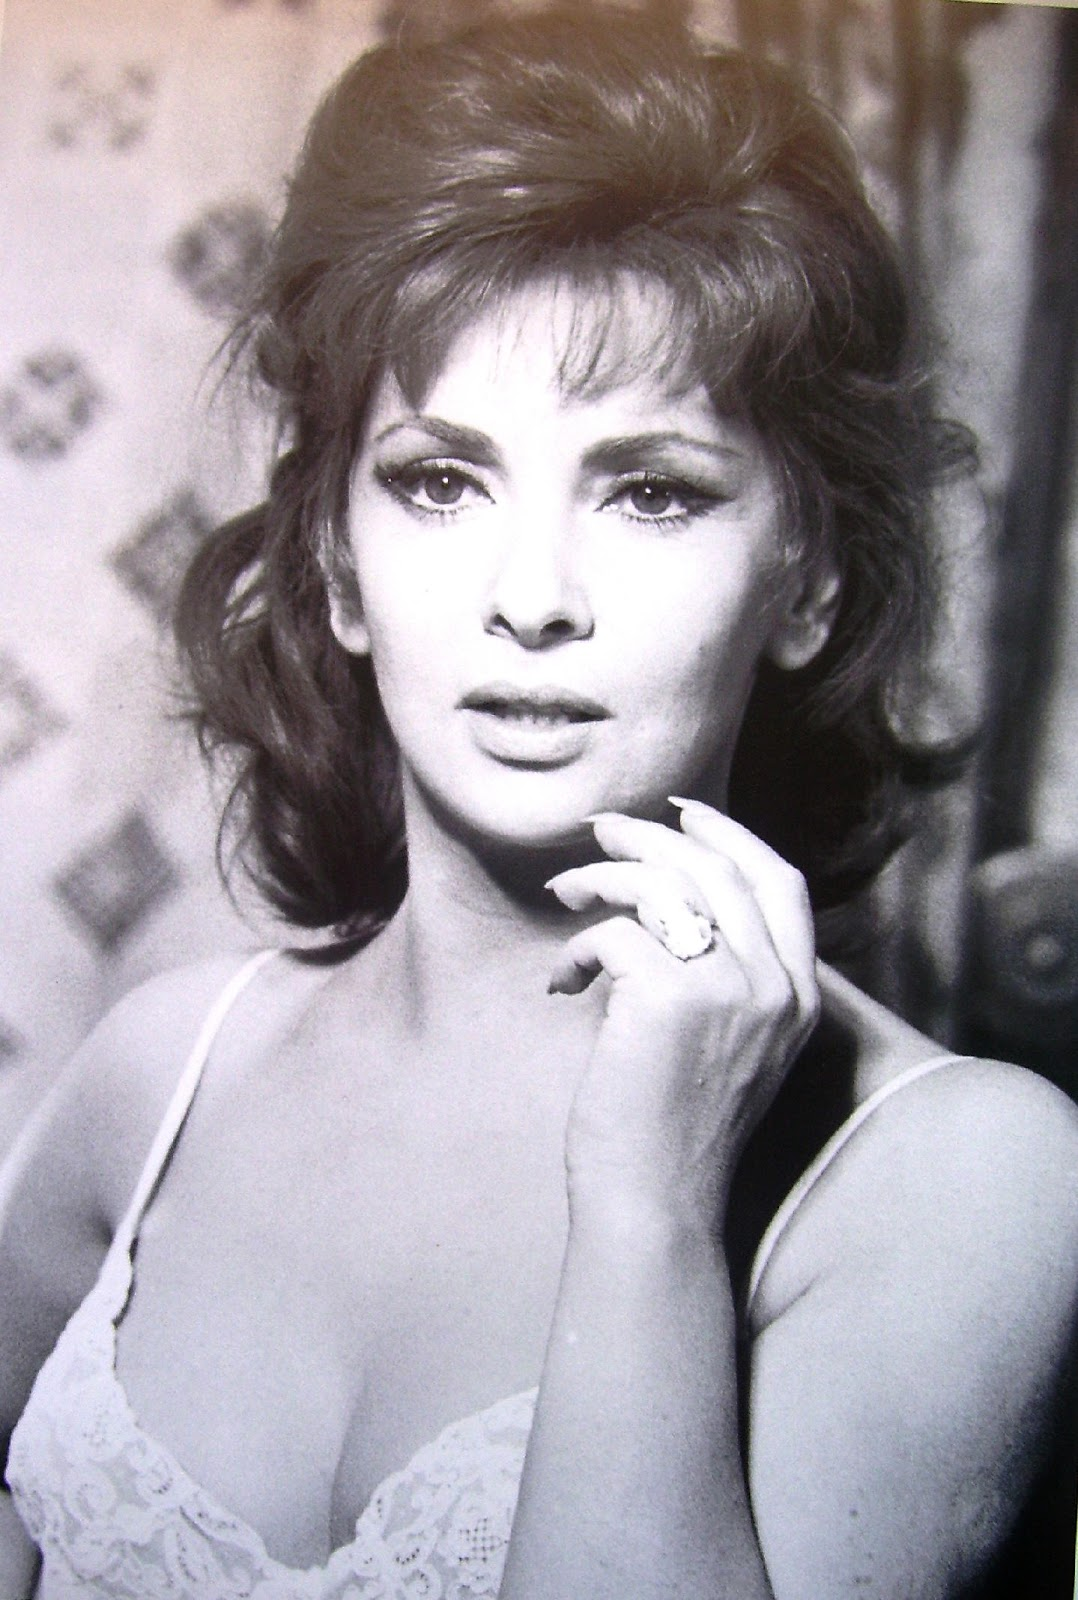 Forum on this topic: Fabrizia Sacchi, gina-lollobrigida-born-1927/